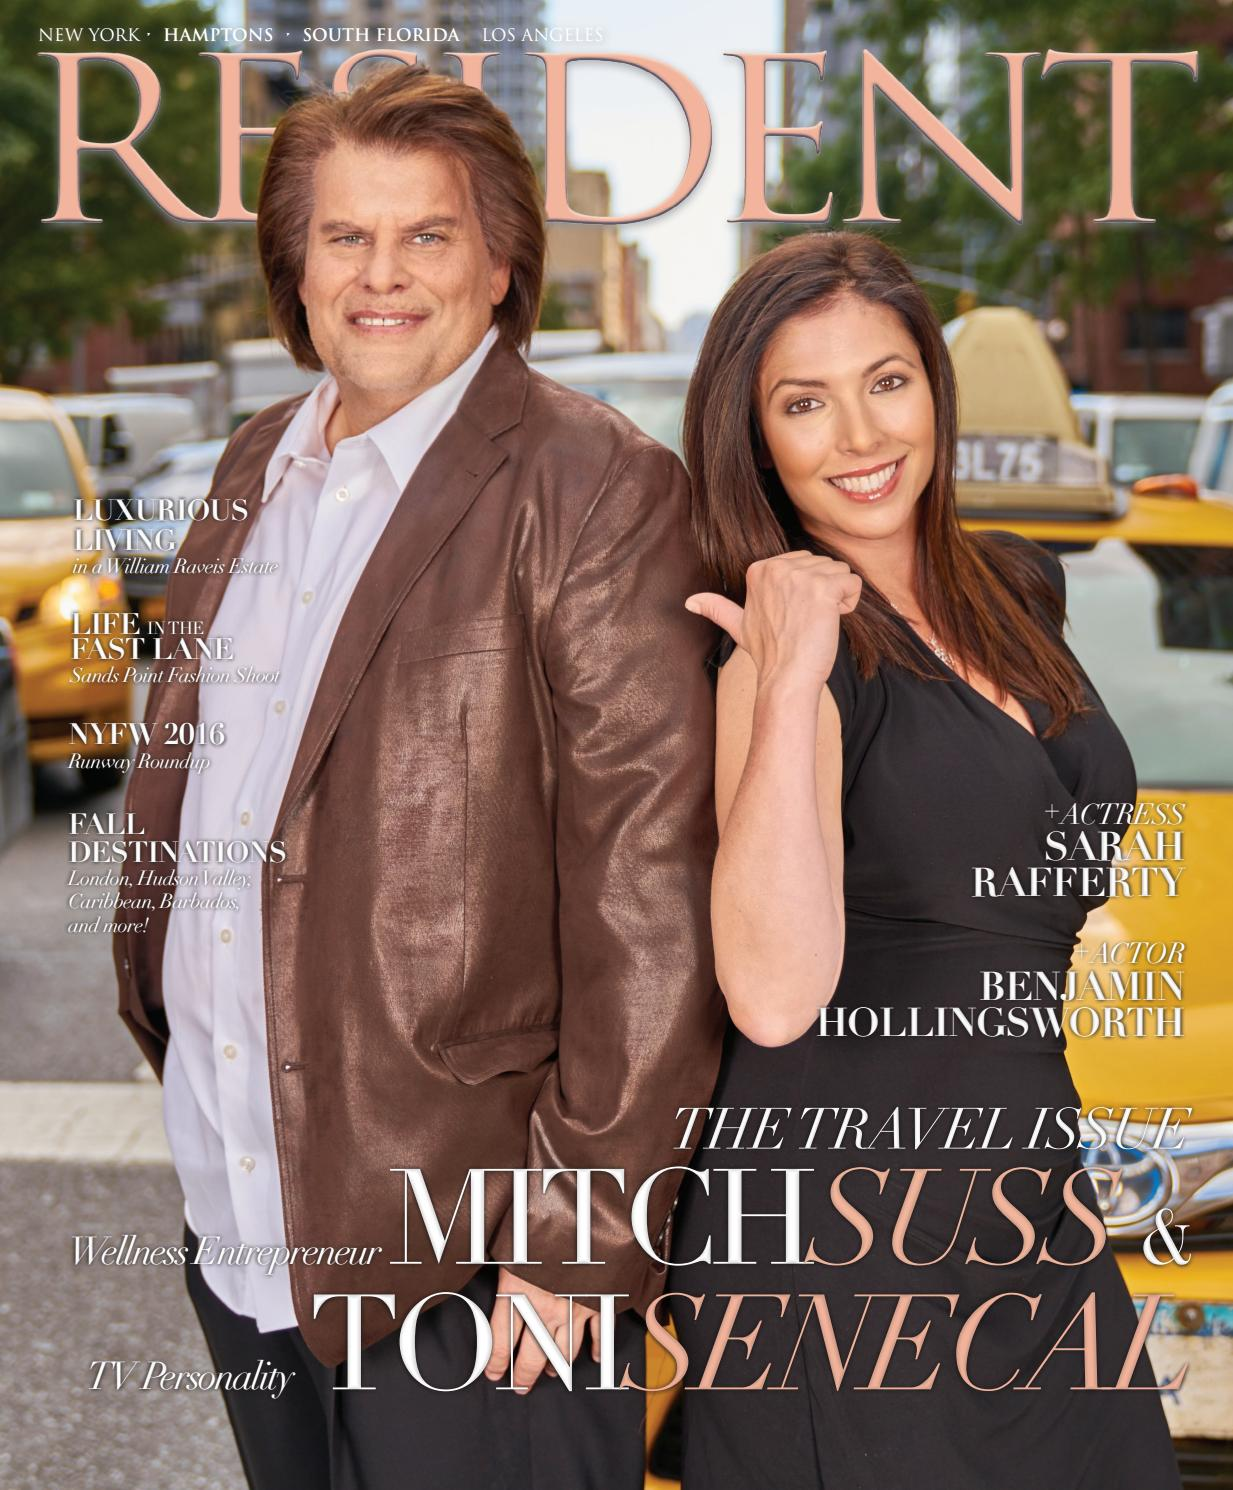 71b2a36d675d64 Resident Magazine October 2016 Issue (Hamptons Cover) by Resident ...